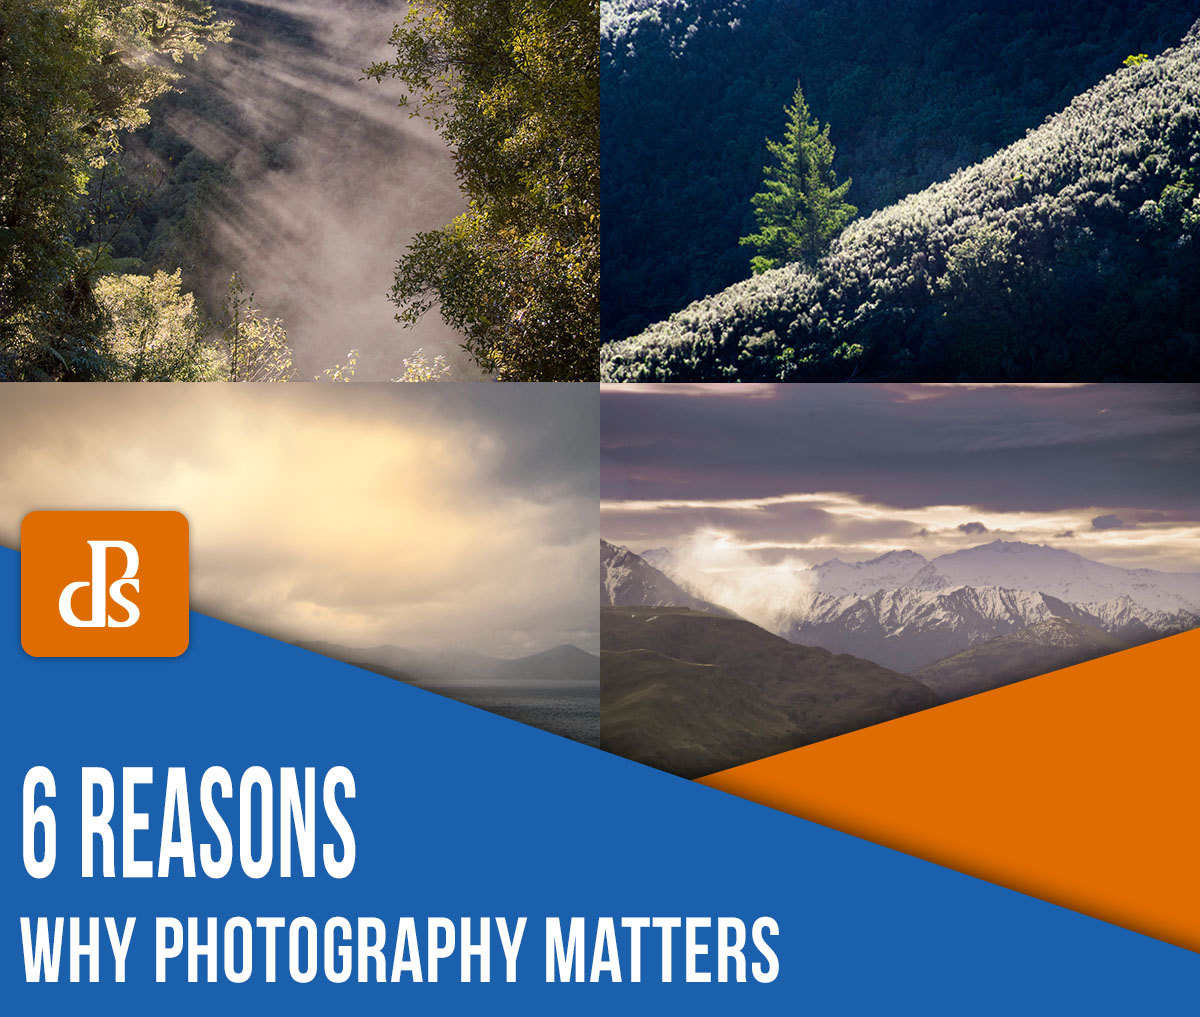 6 Reasons Why Photography Matters